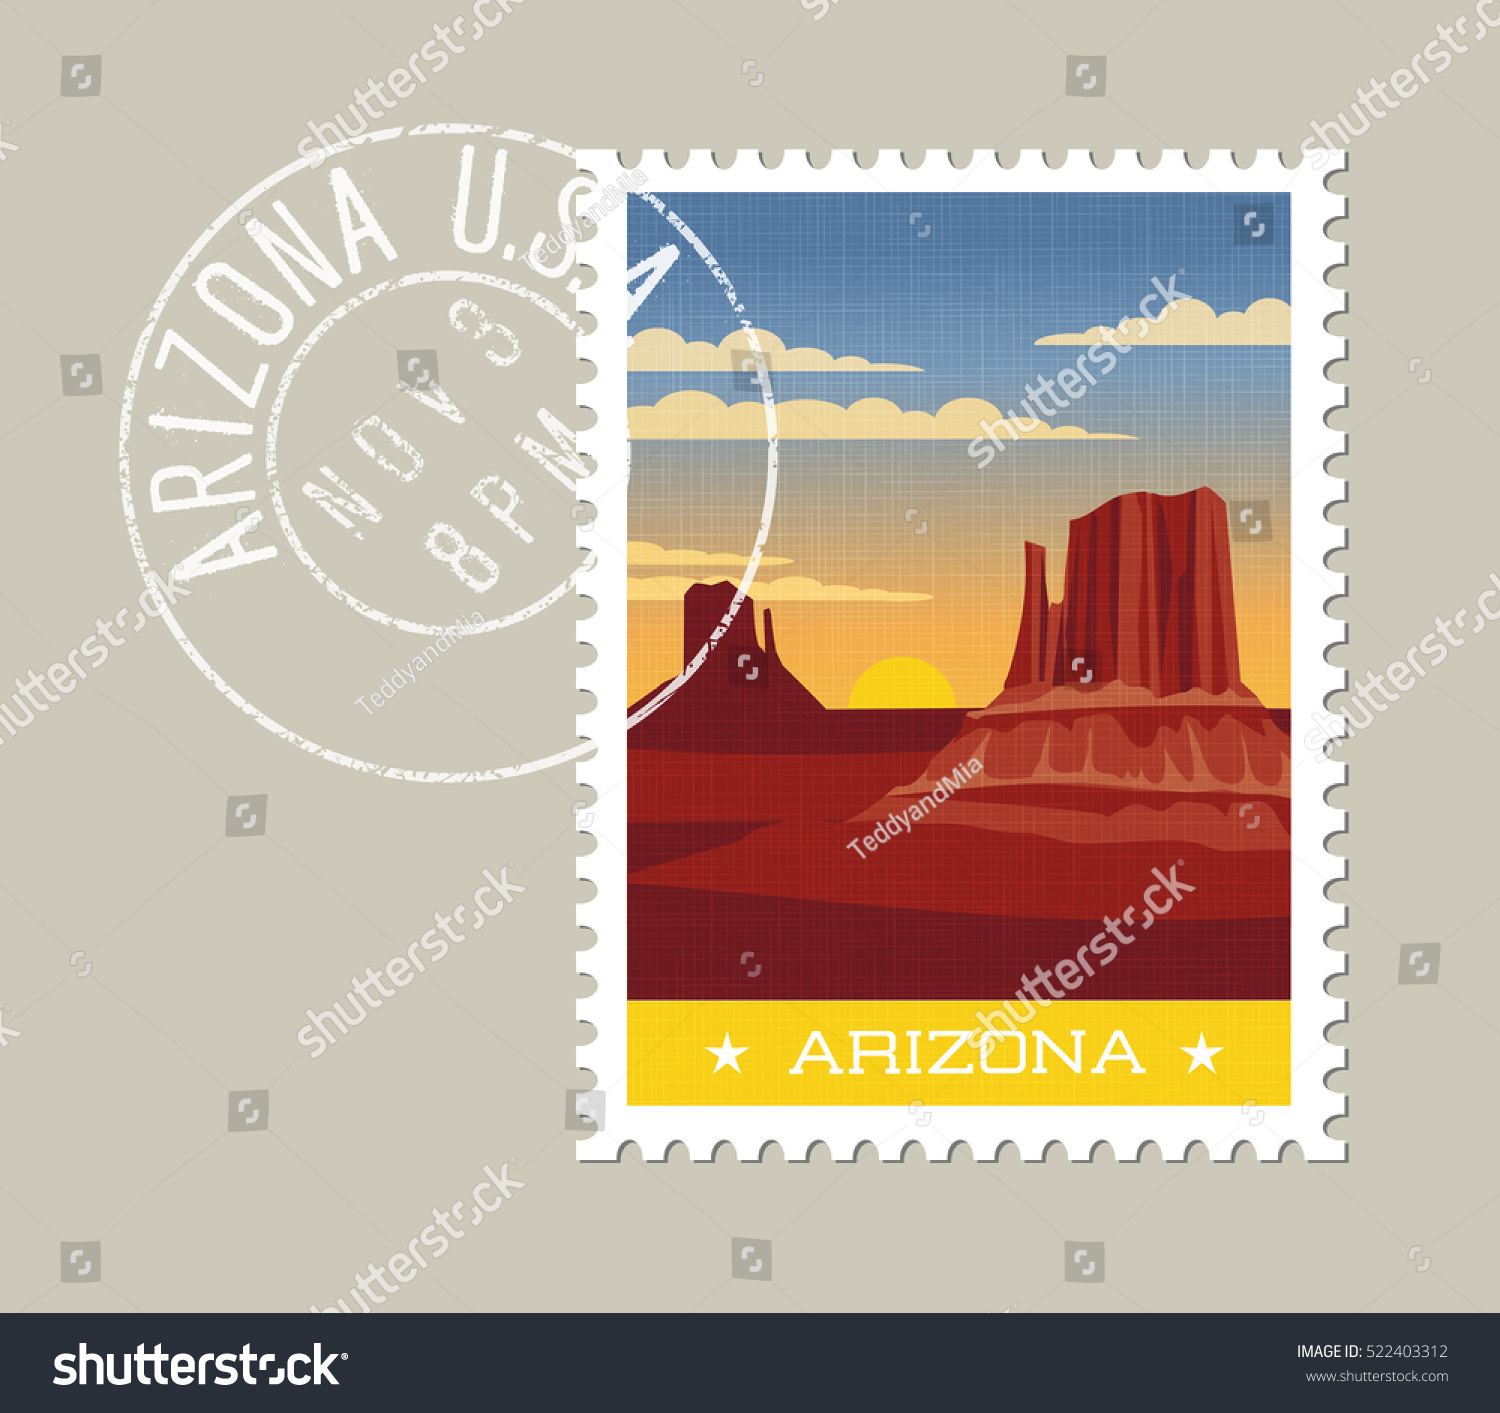 Arizona Postage Stamp Design Detailed Vector Stock Vector 522403312 Shutterstock